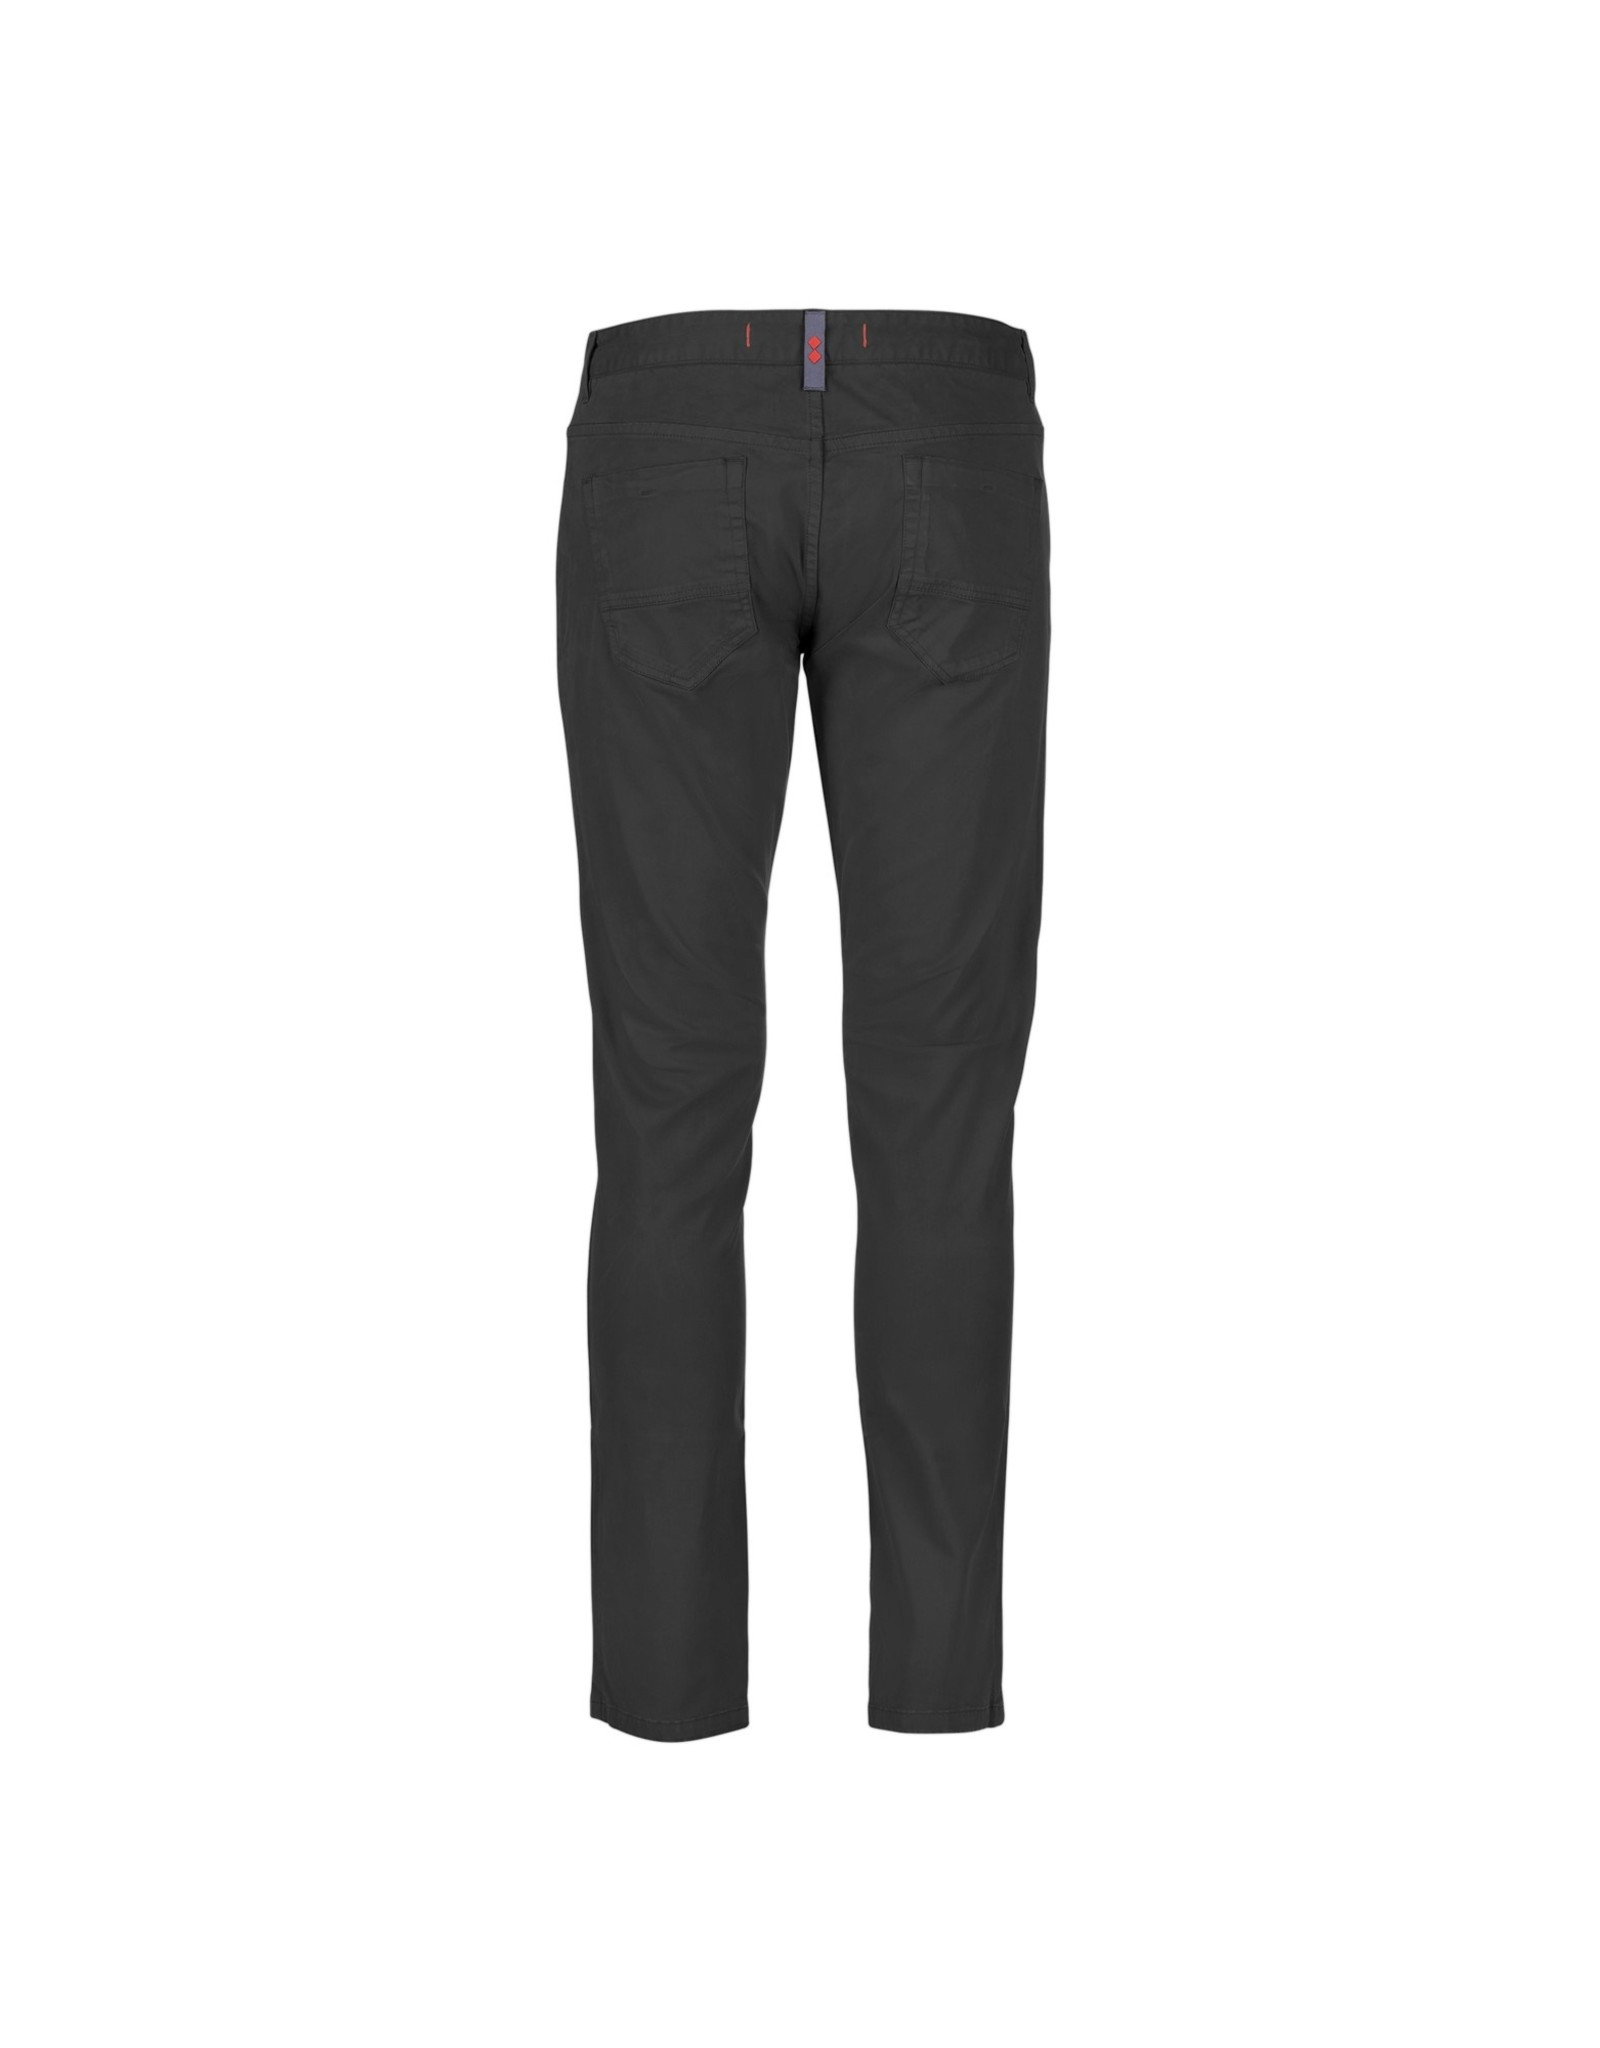 Slam Trousers B4 - Anthracite ( 171 )